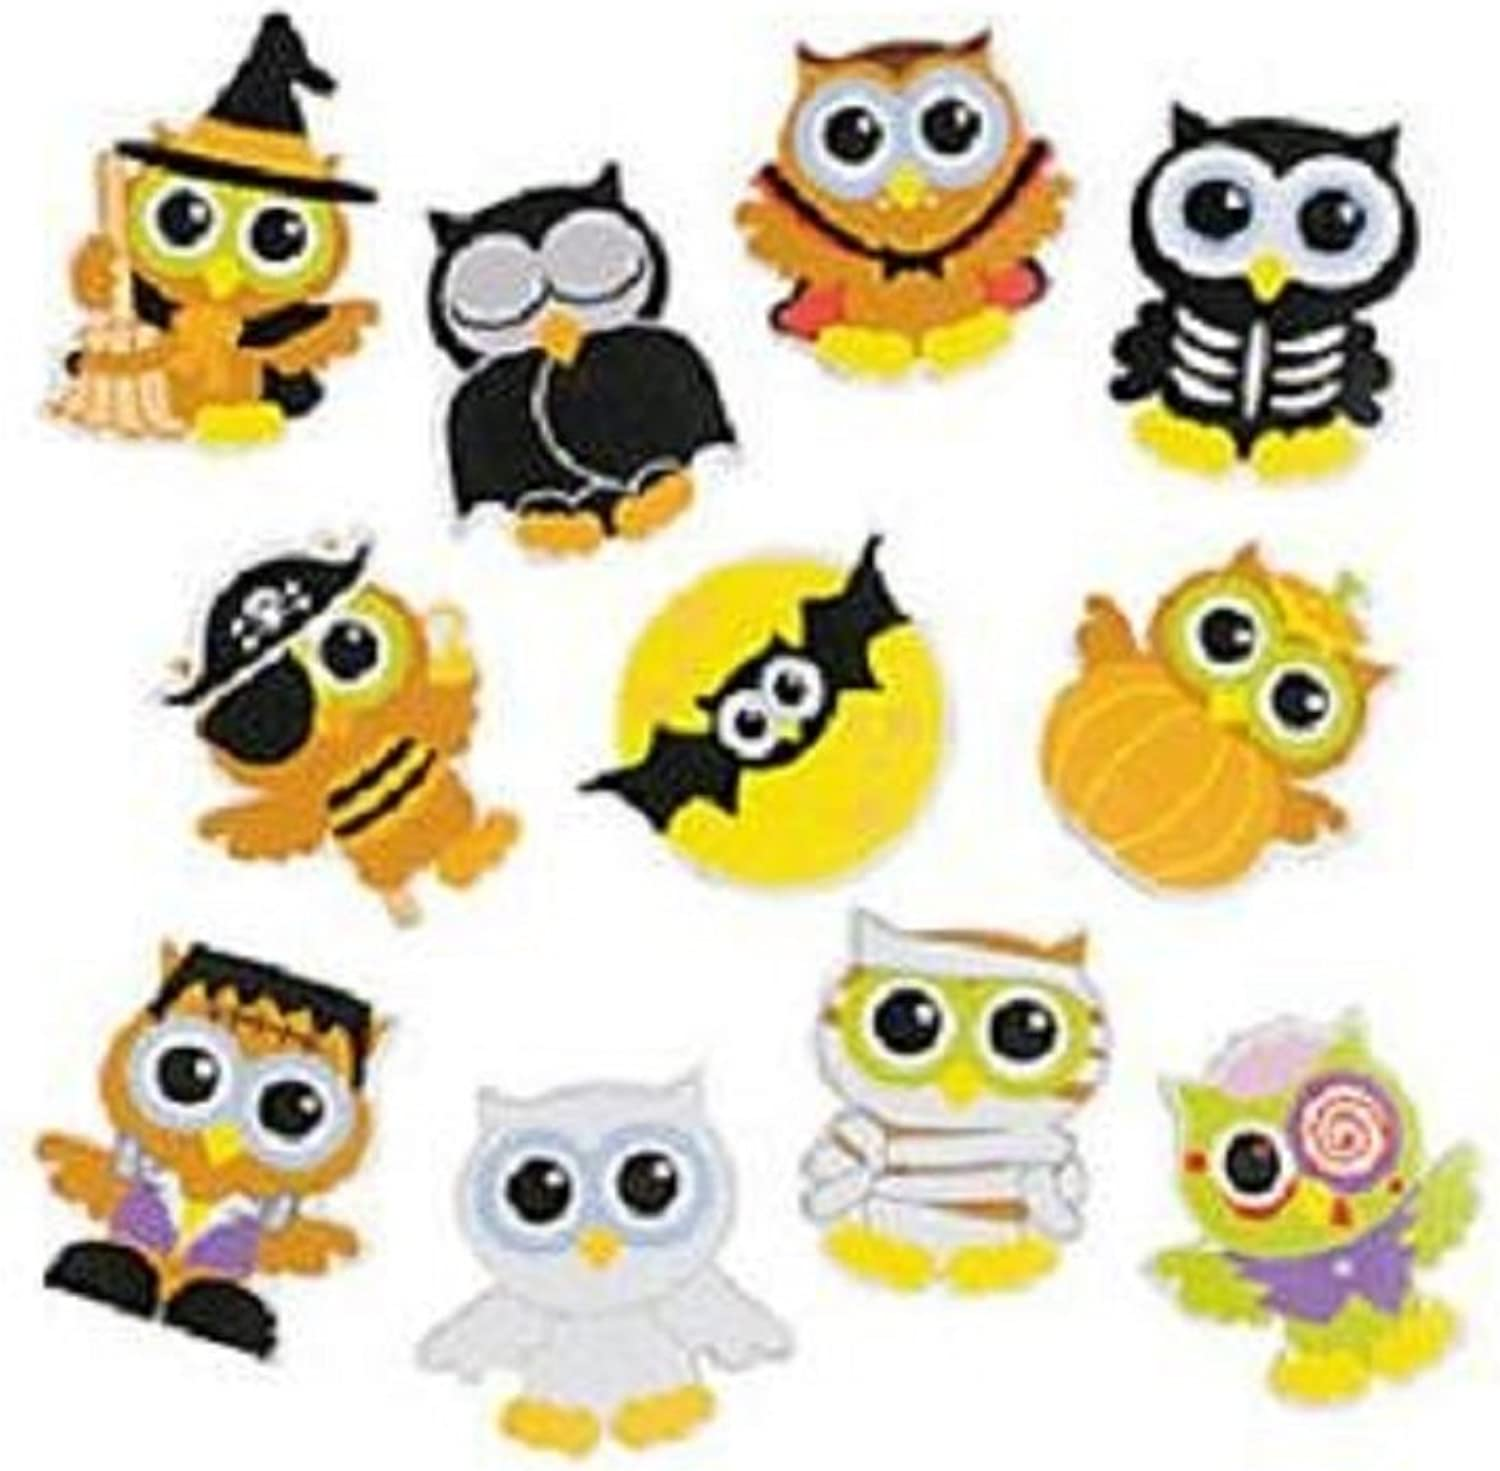 100  Halloween Owls Foam Stickers   Selfadhesive Shapes  Approx. 1.25  1.5   New